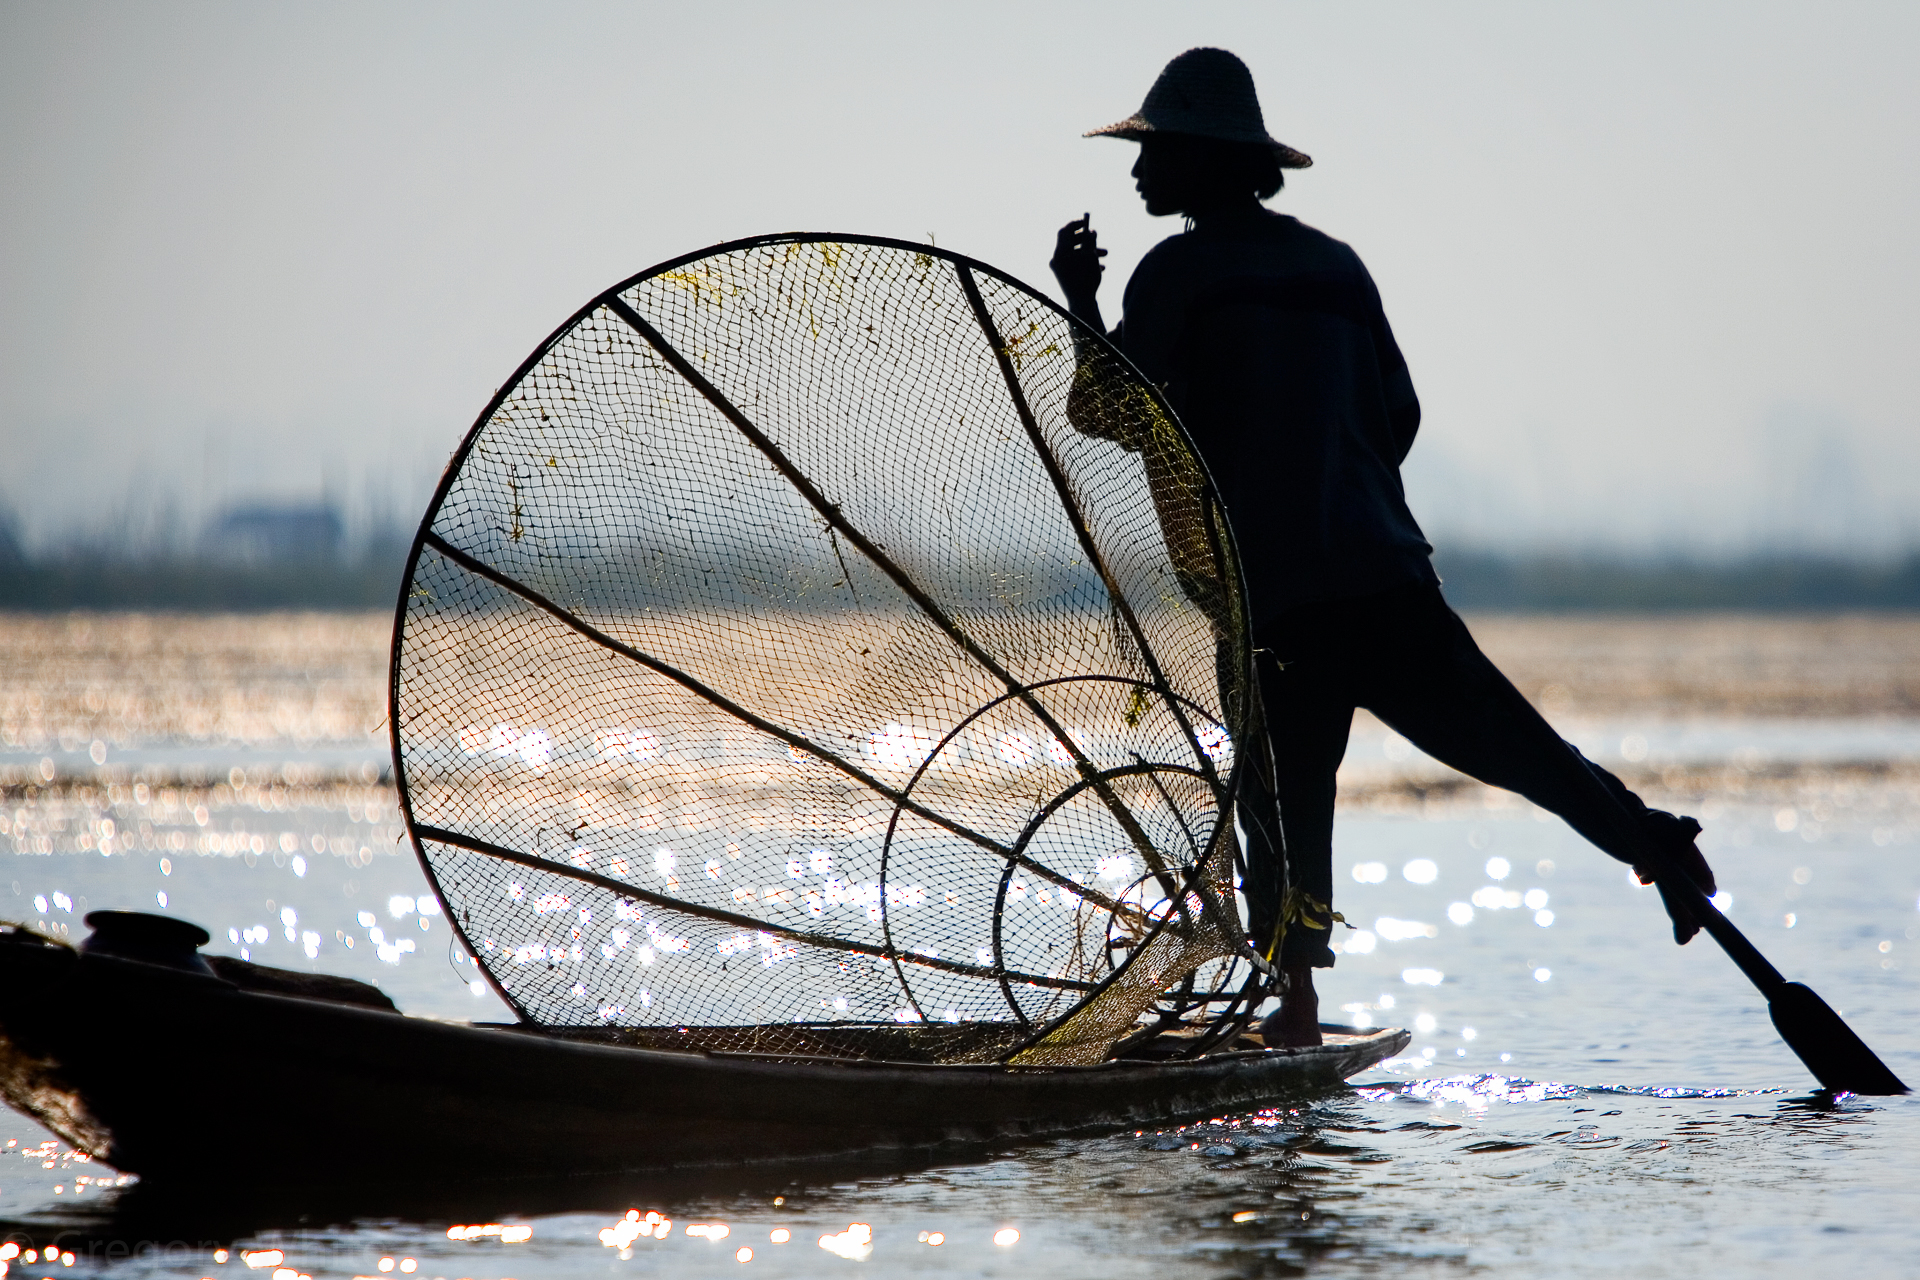 Fisherman, Inlee Lake, Burma, 2006